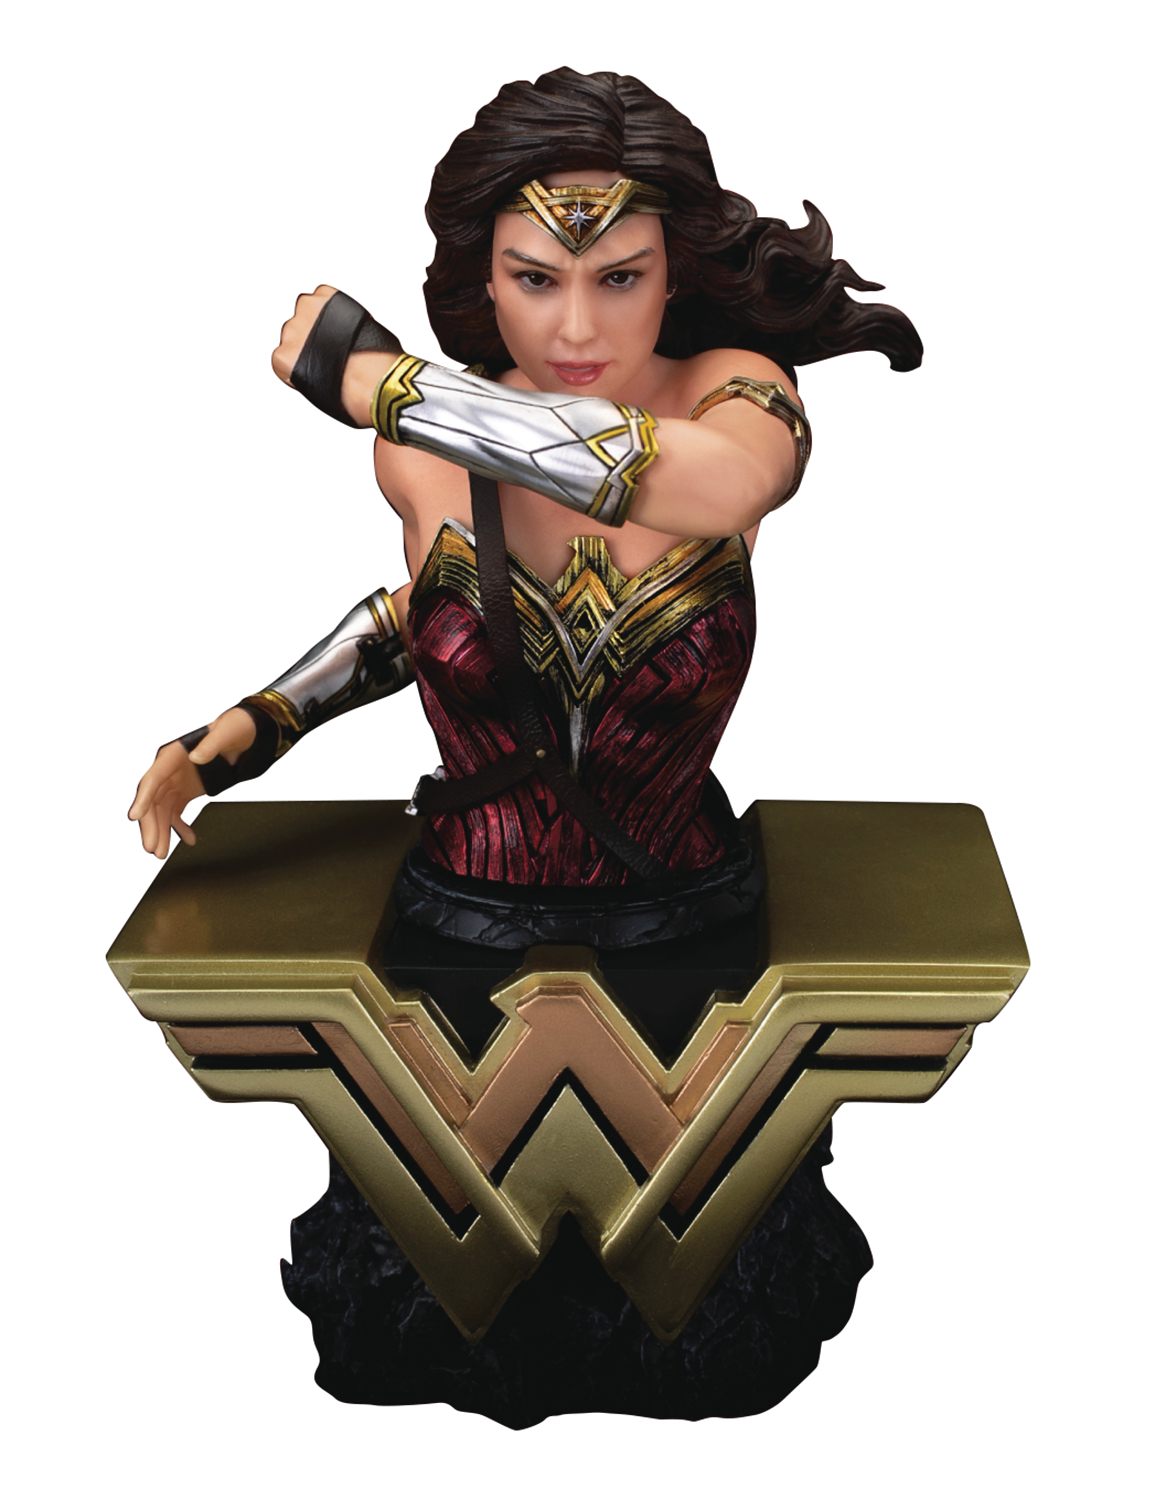 JUSTICE LEAGUE BUST SER WONDER WOMAN PVC BUST